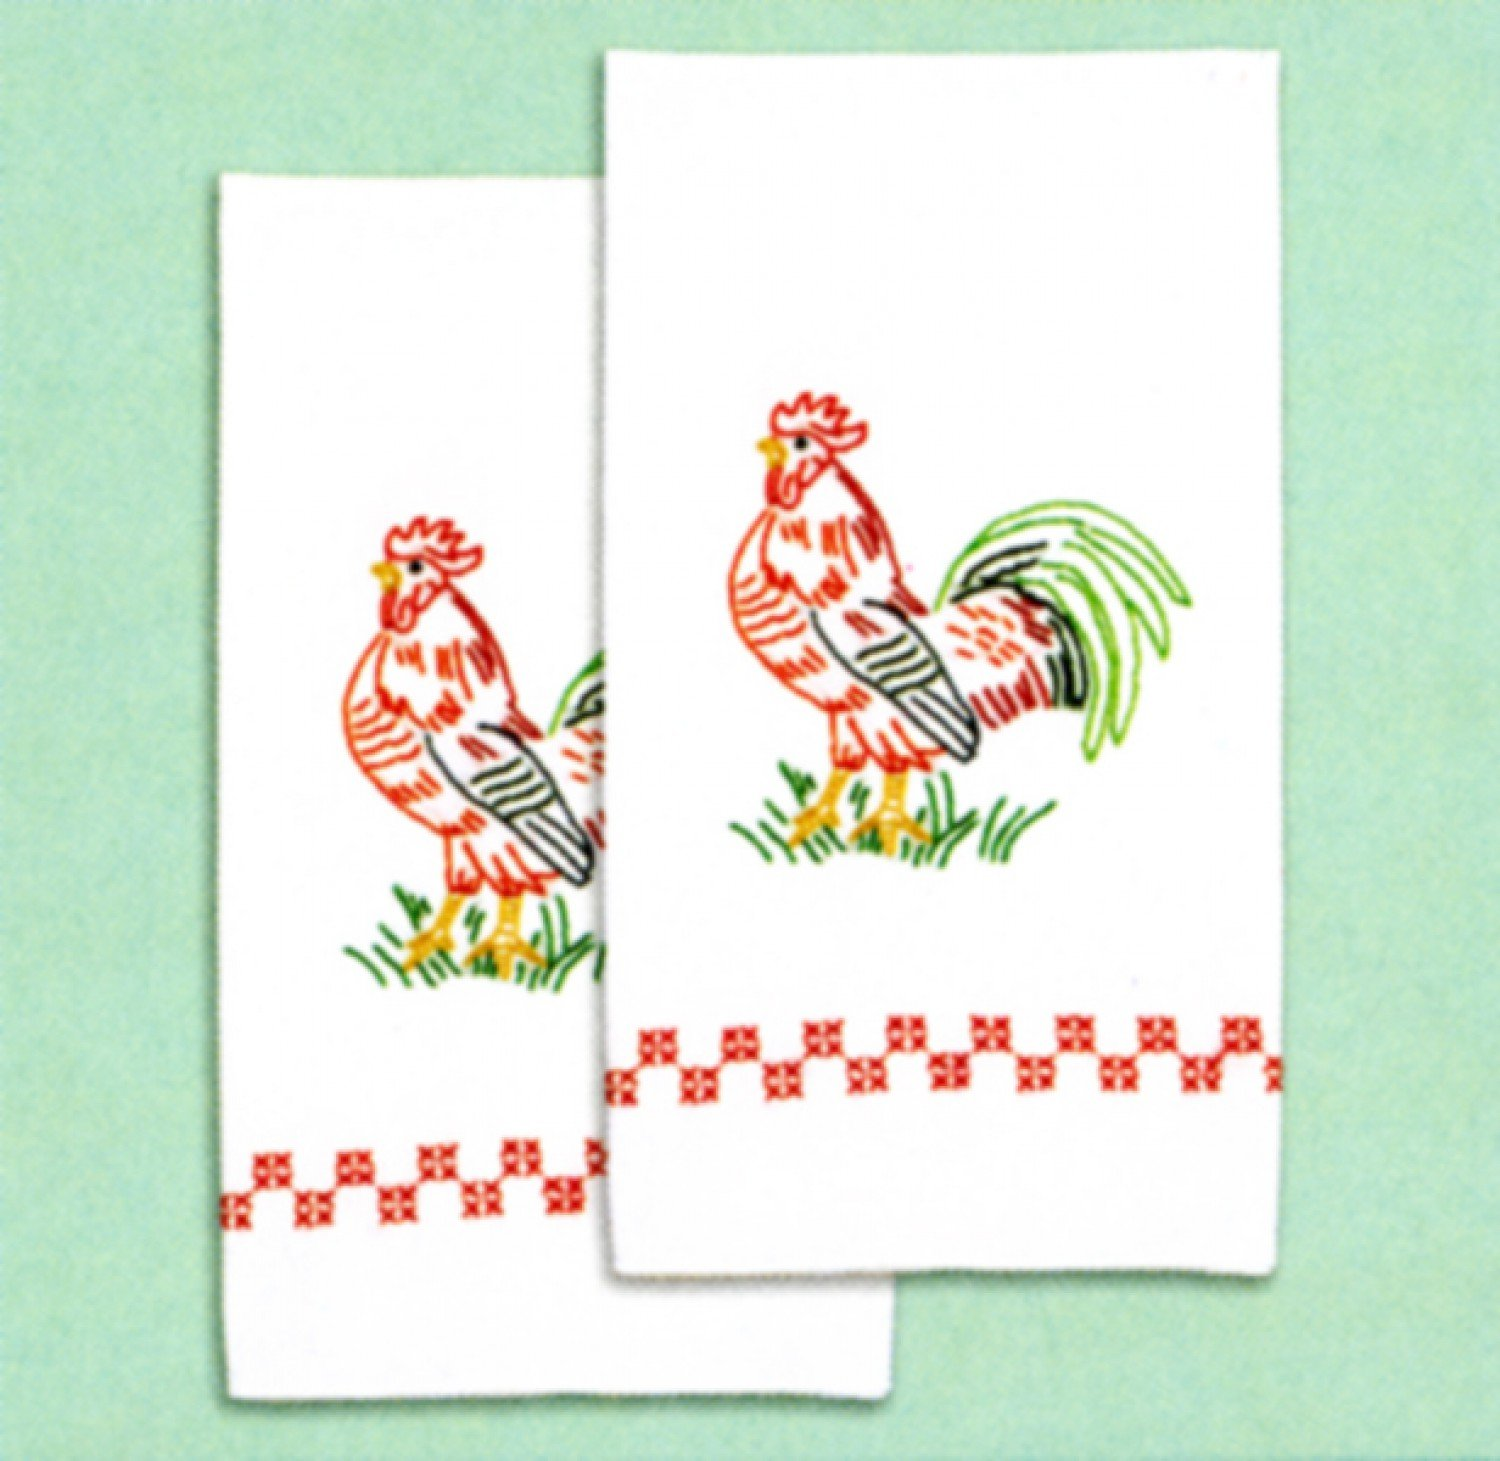 Jack Dempsey - 320-314 - Rooster Decorative Hand Towel Set of 2 - Cross Stitch & Embroidery